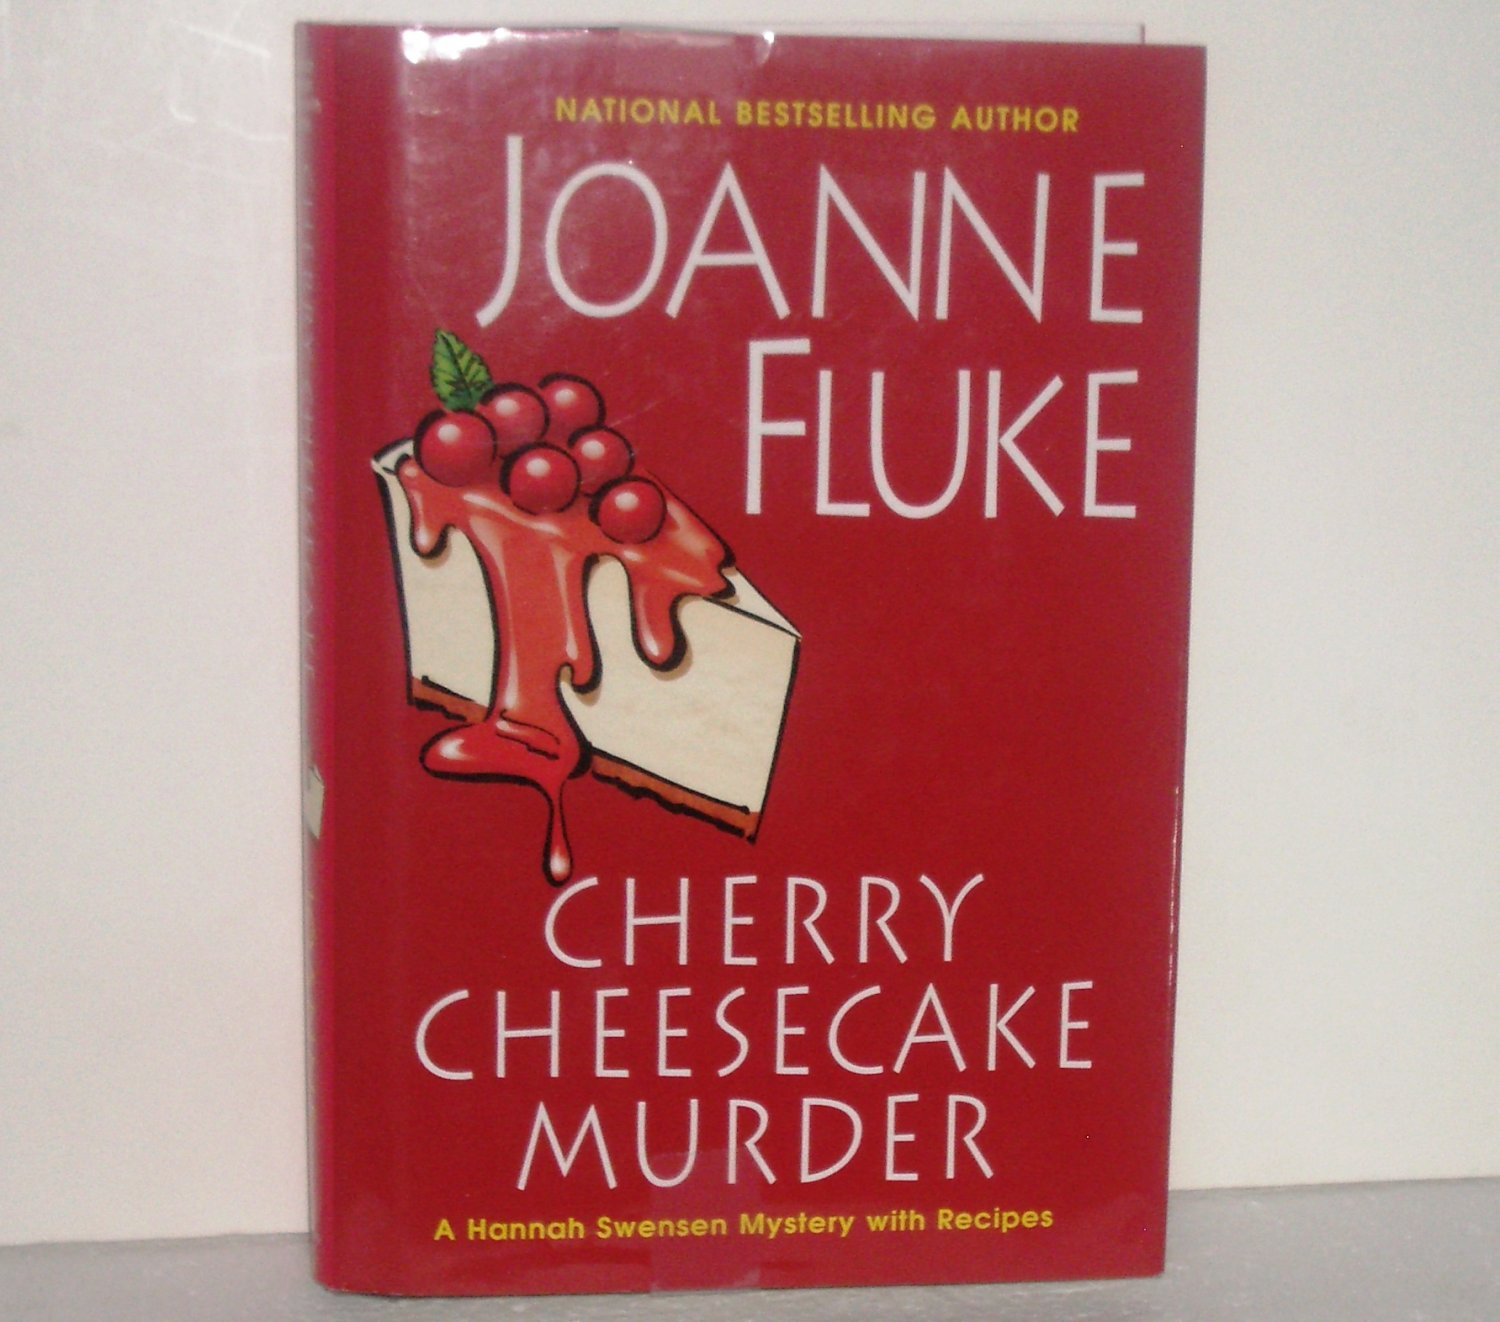 Cherry Cheesecake Murder by Joanne Fluke 2006 Hardcover with Dust Jacket Hannah Swensen Cozy Mystery